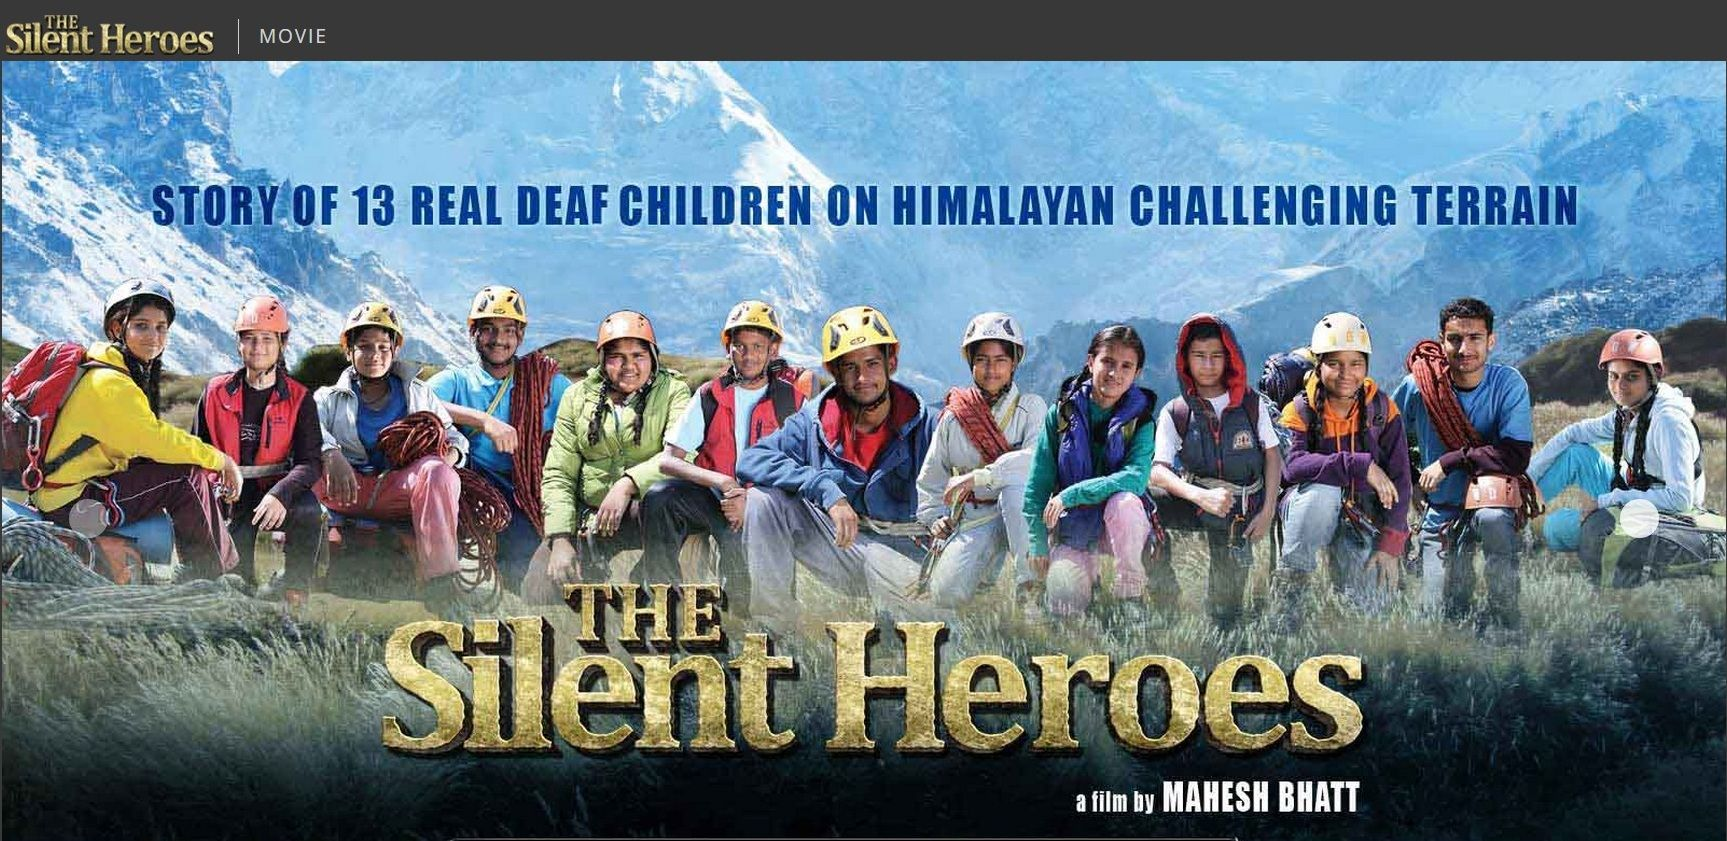 The first deaf Movie in India with 13 Real Deaf Children